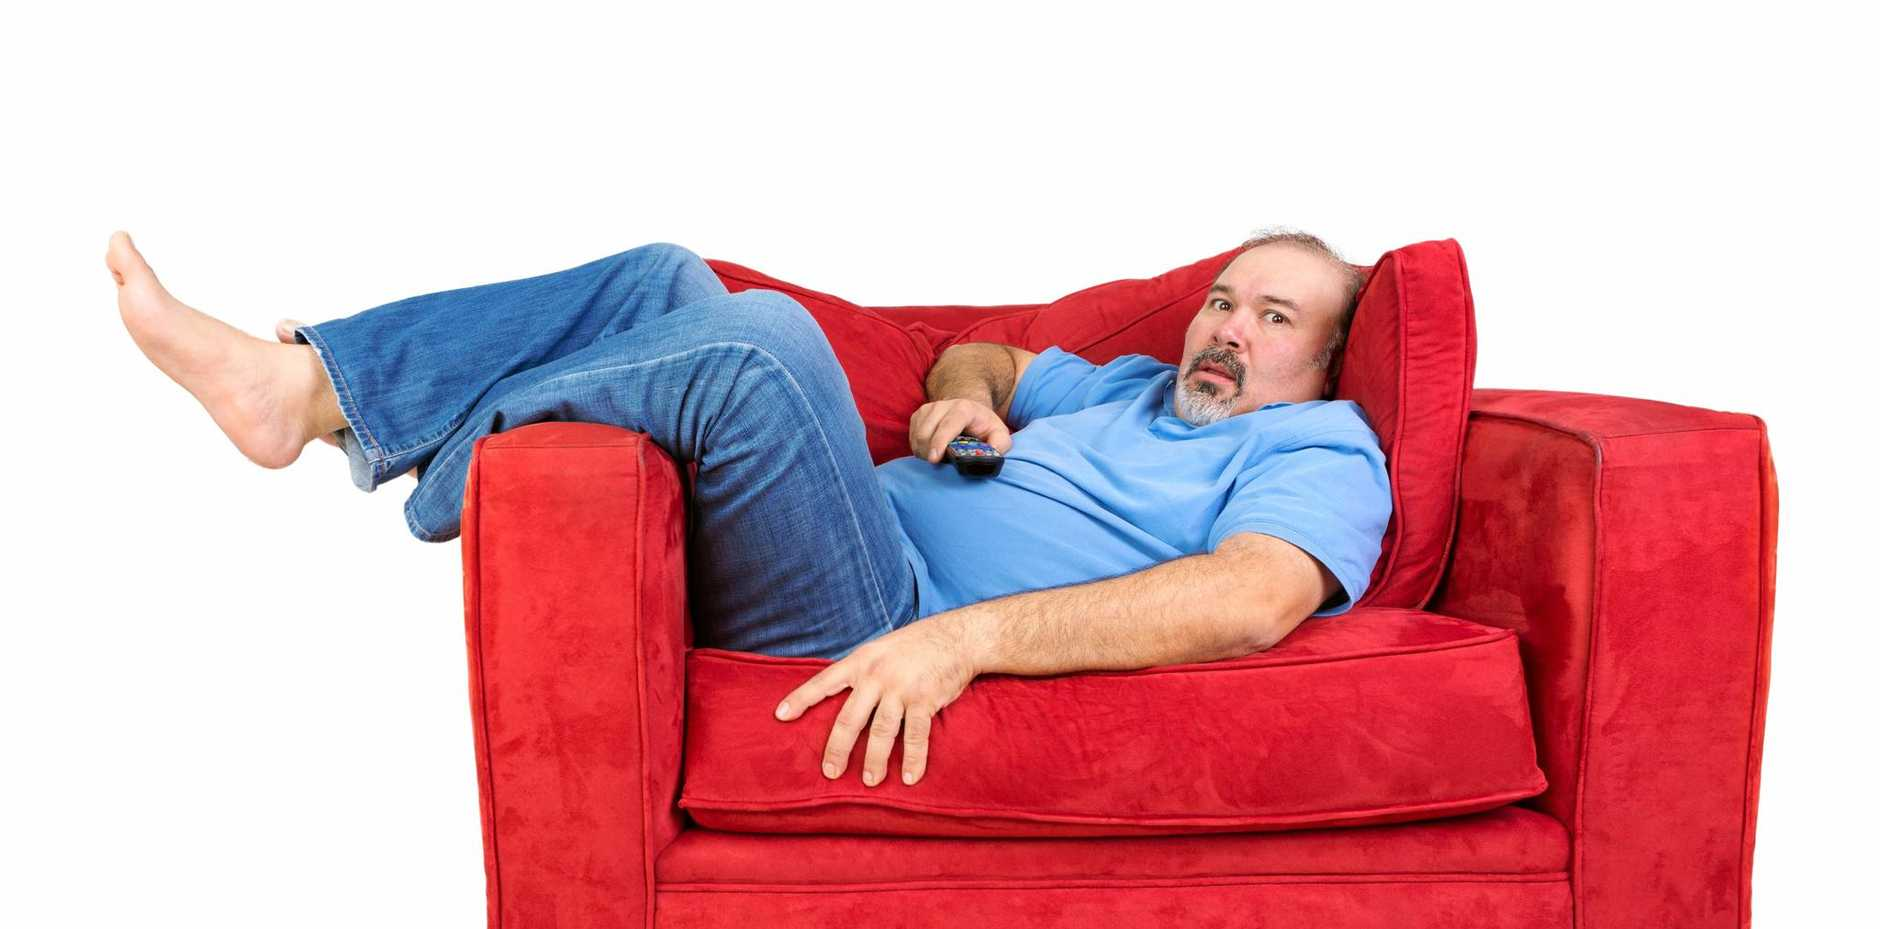 Time to get off the couch as researchers say inactivity can contribute to dementia.